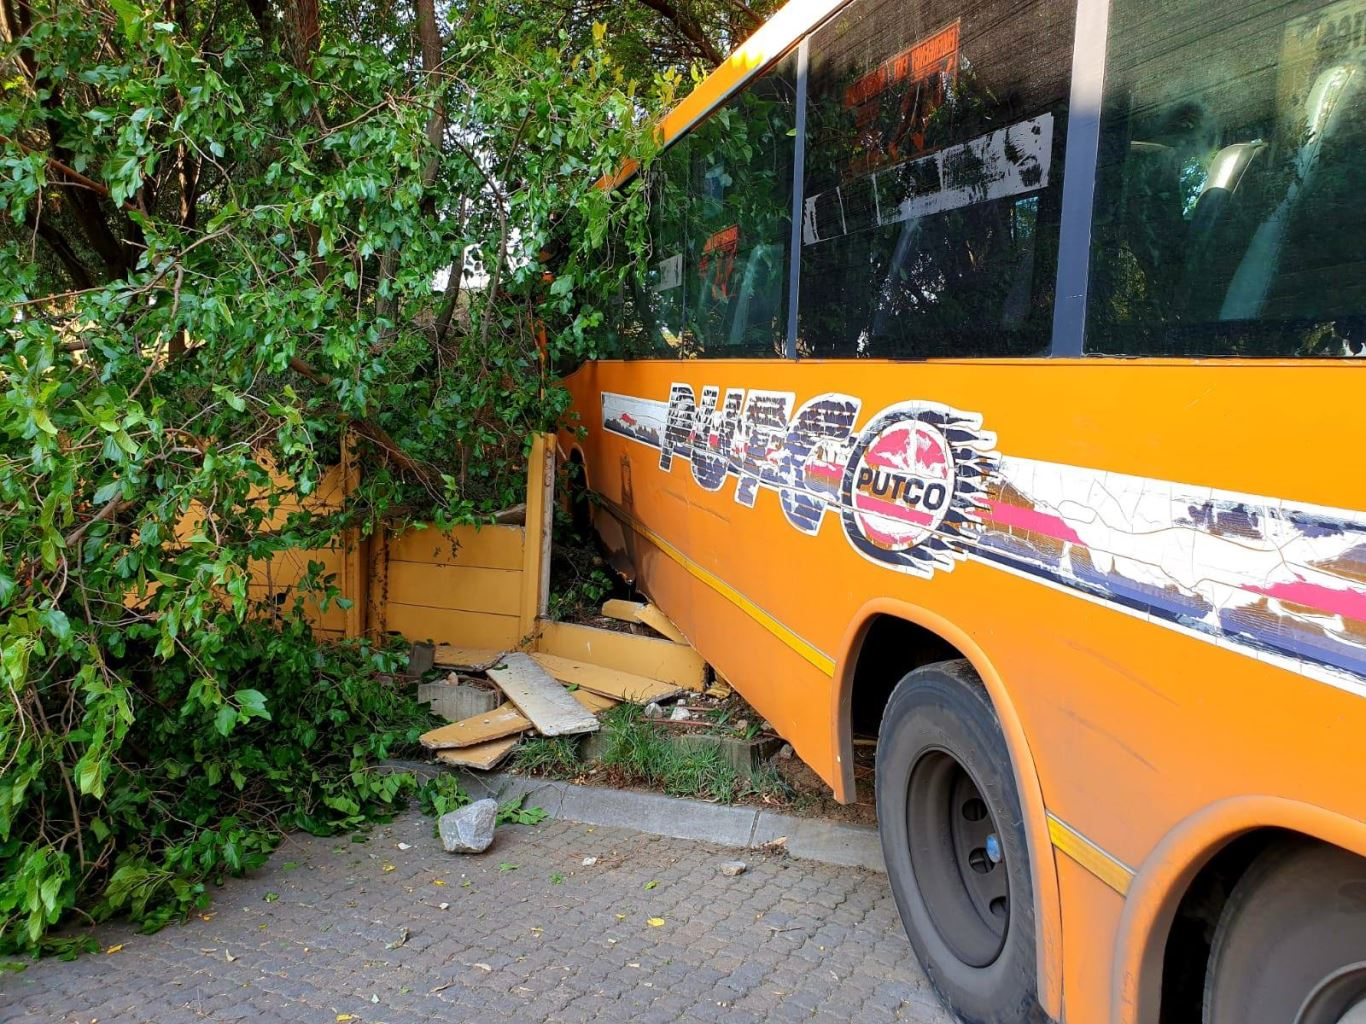 Fortunate escape from injury as bus crashes through a wall in Randburg